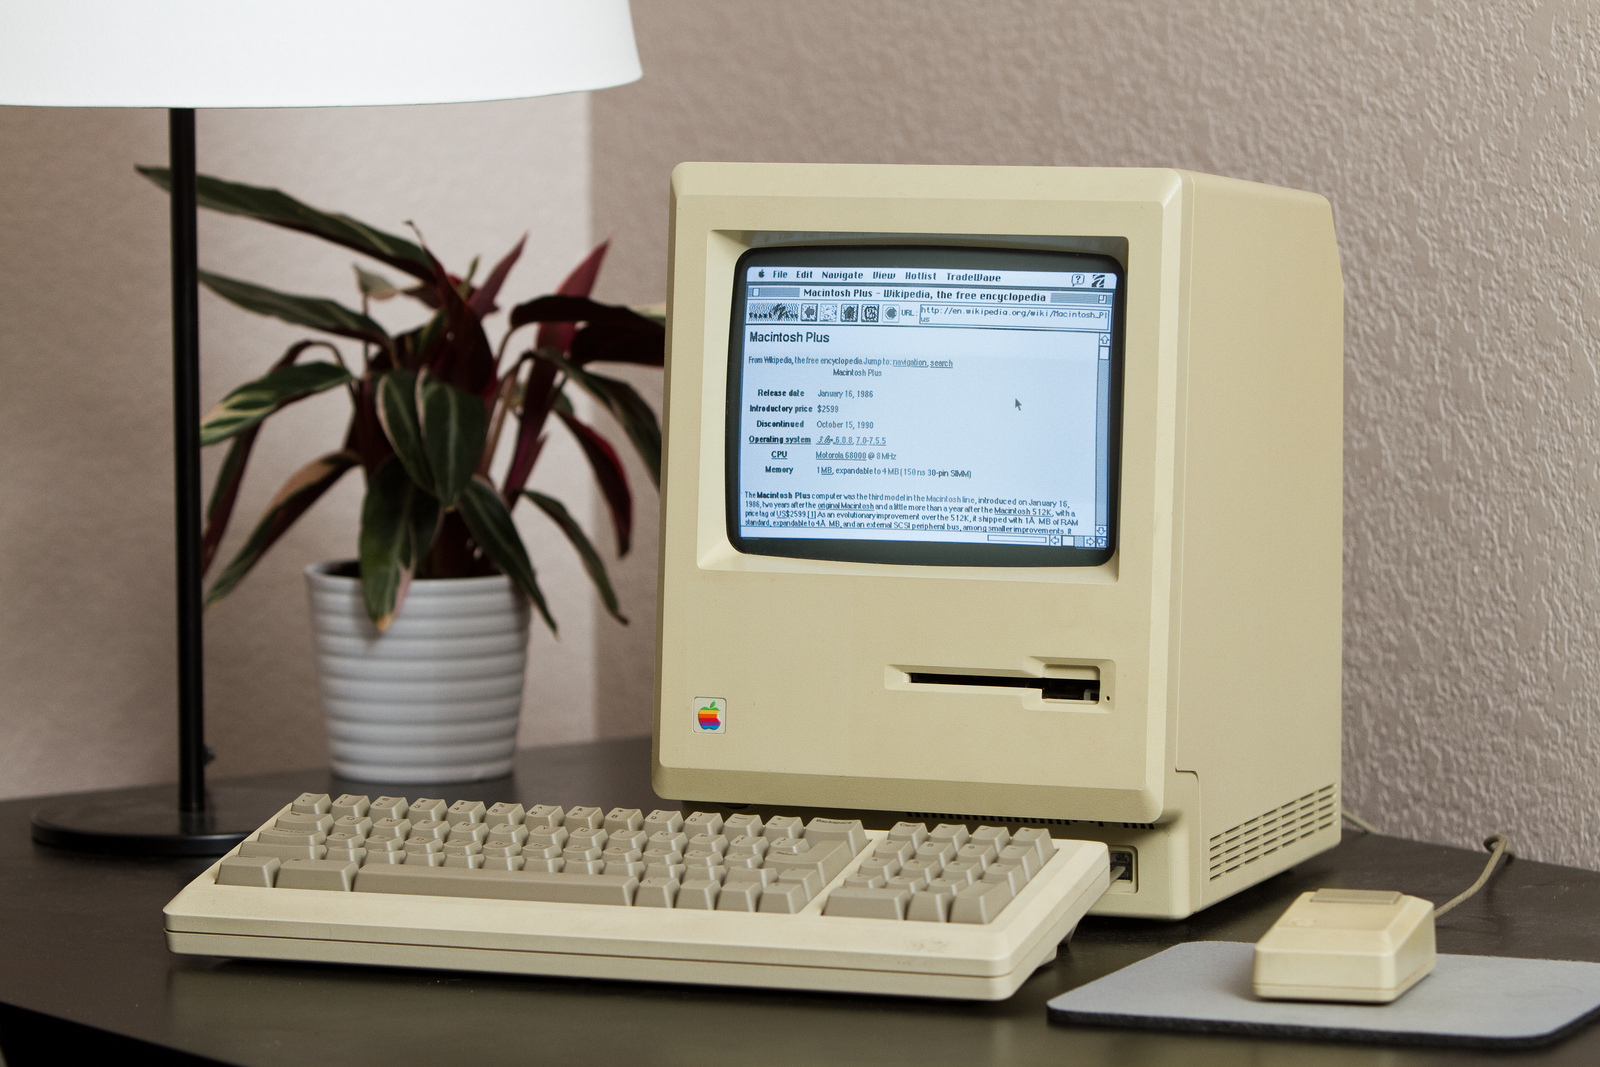 Engineer Connects 27-Year-Old Macintosh Plus to the Internet